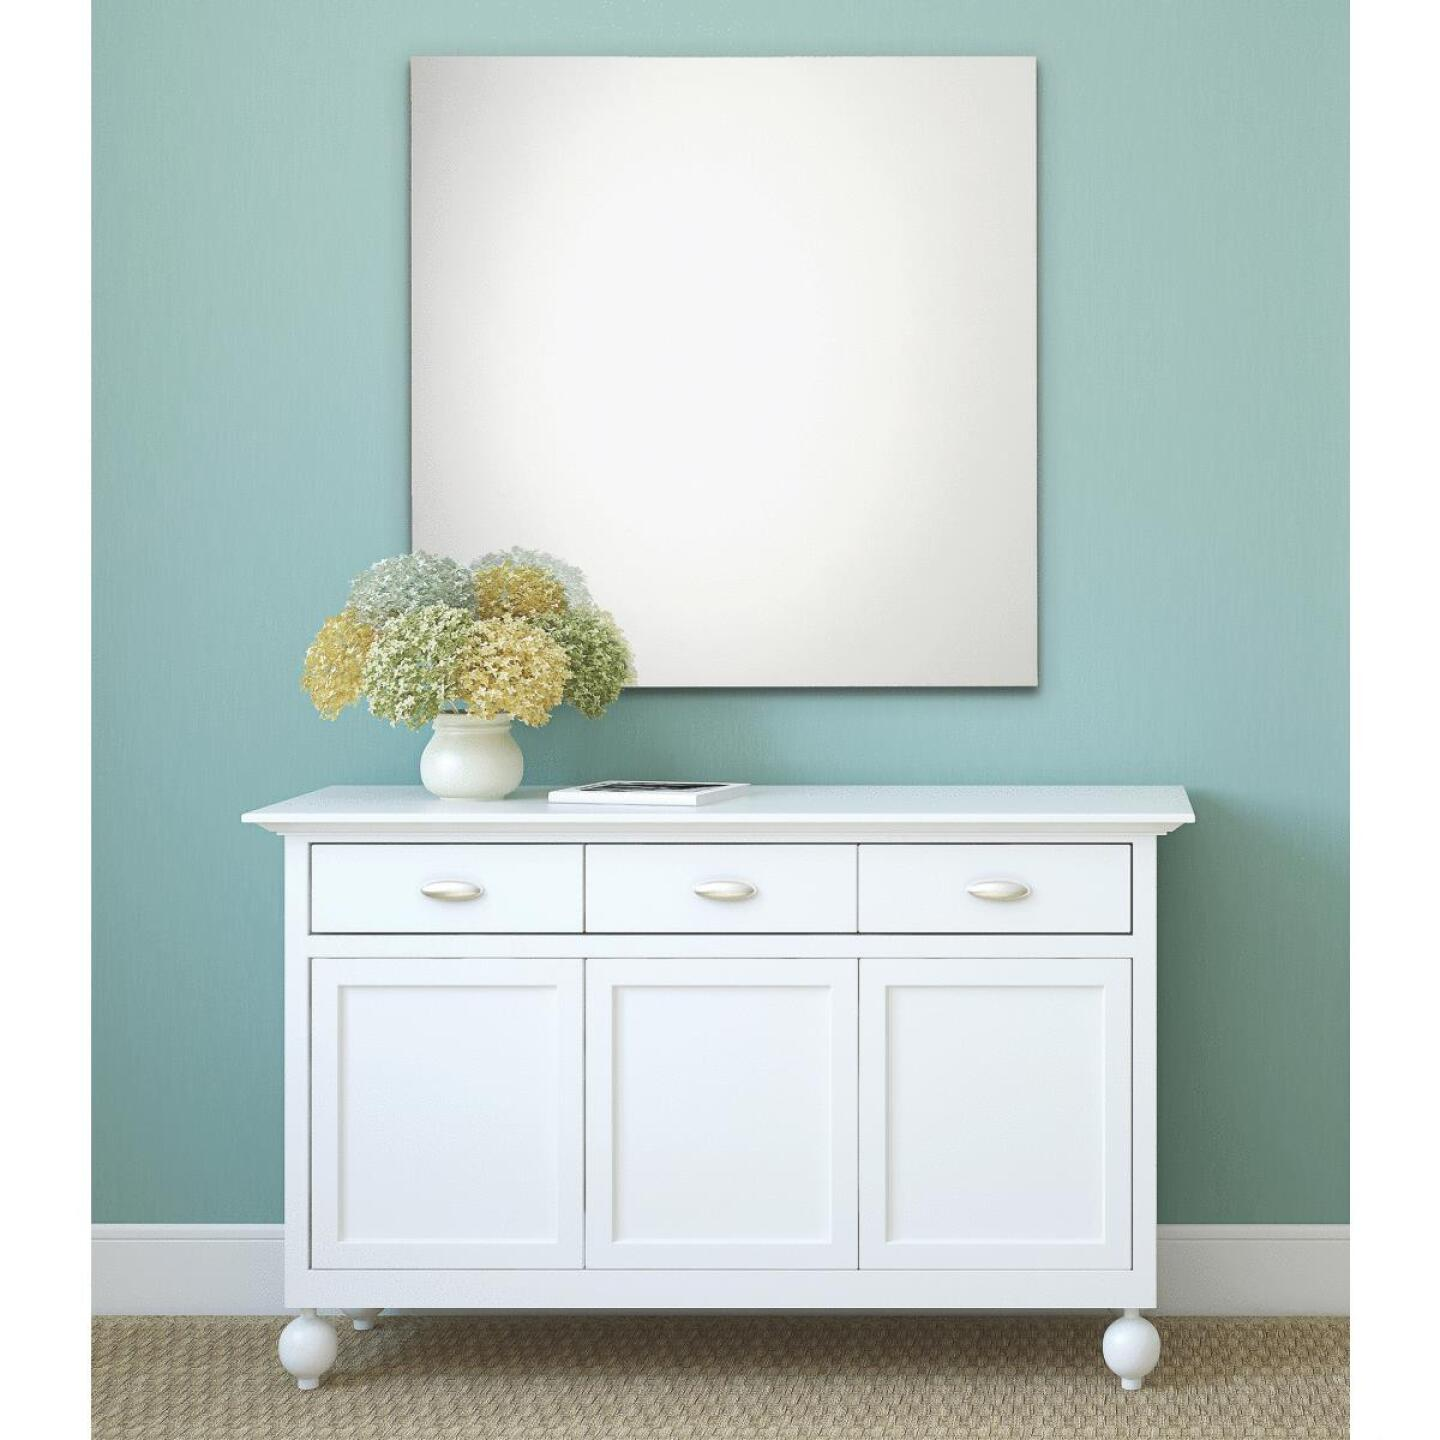 Erias Home Design 36 In. W. x 48 In. H. Frameless Polished Edge Wall Mirror Image 1